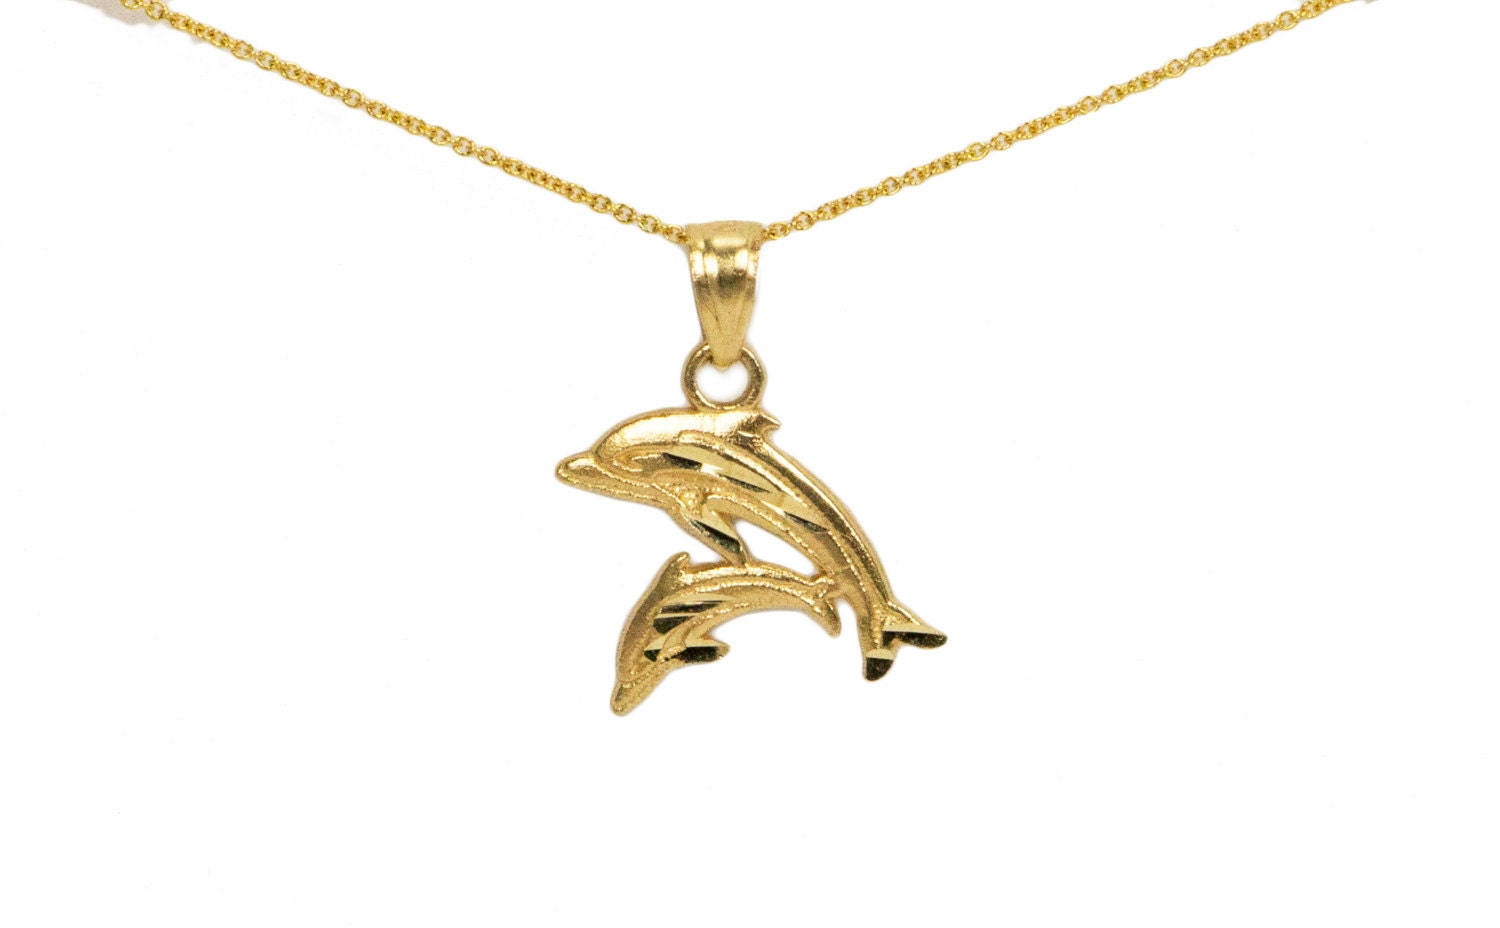 14k gold dolphin necklace dainty gold necklace gold dolphin